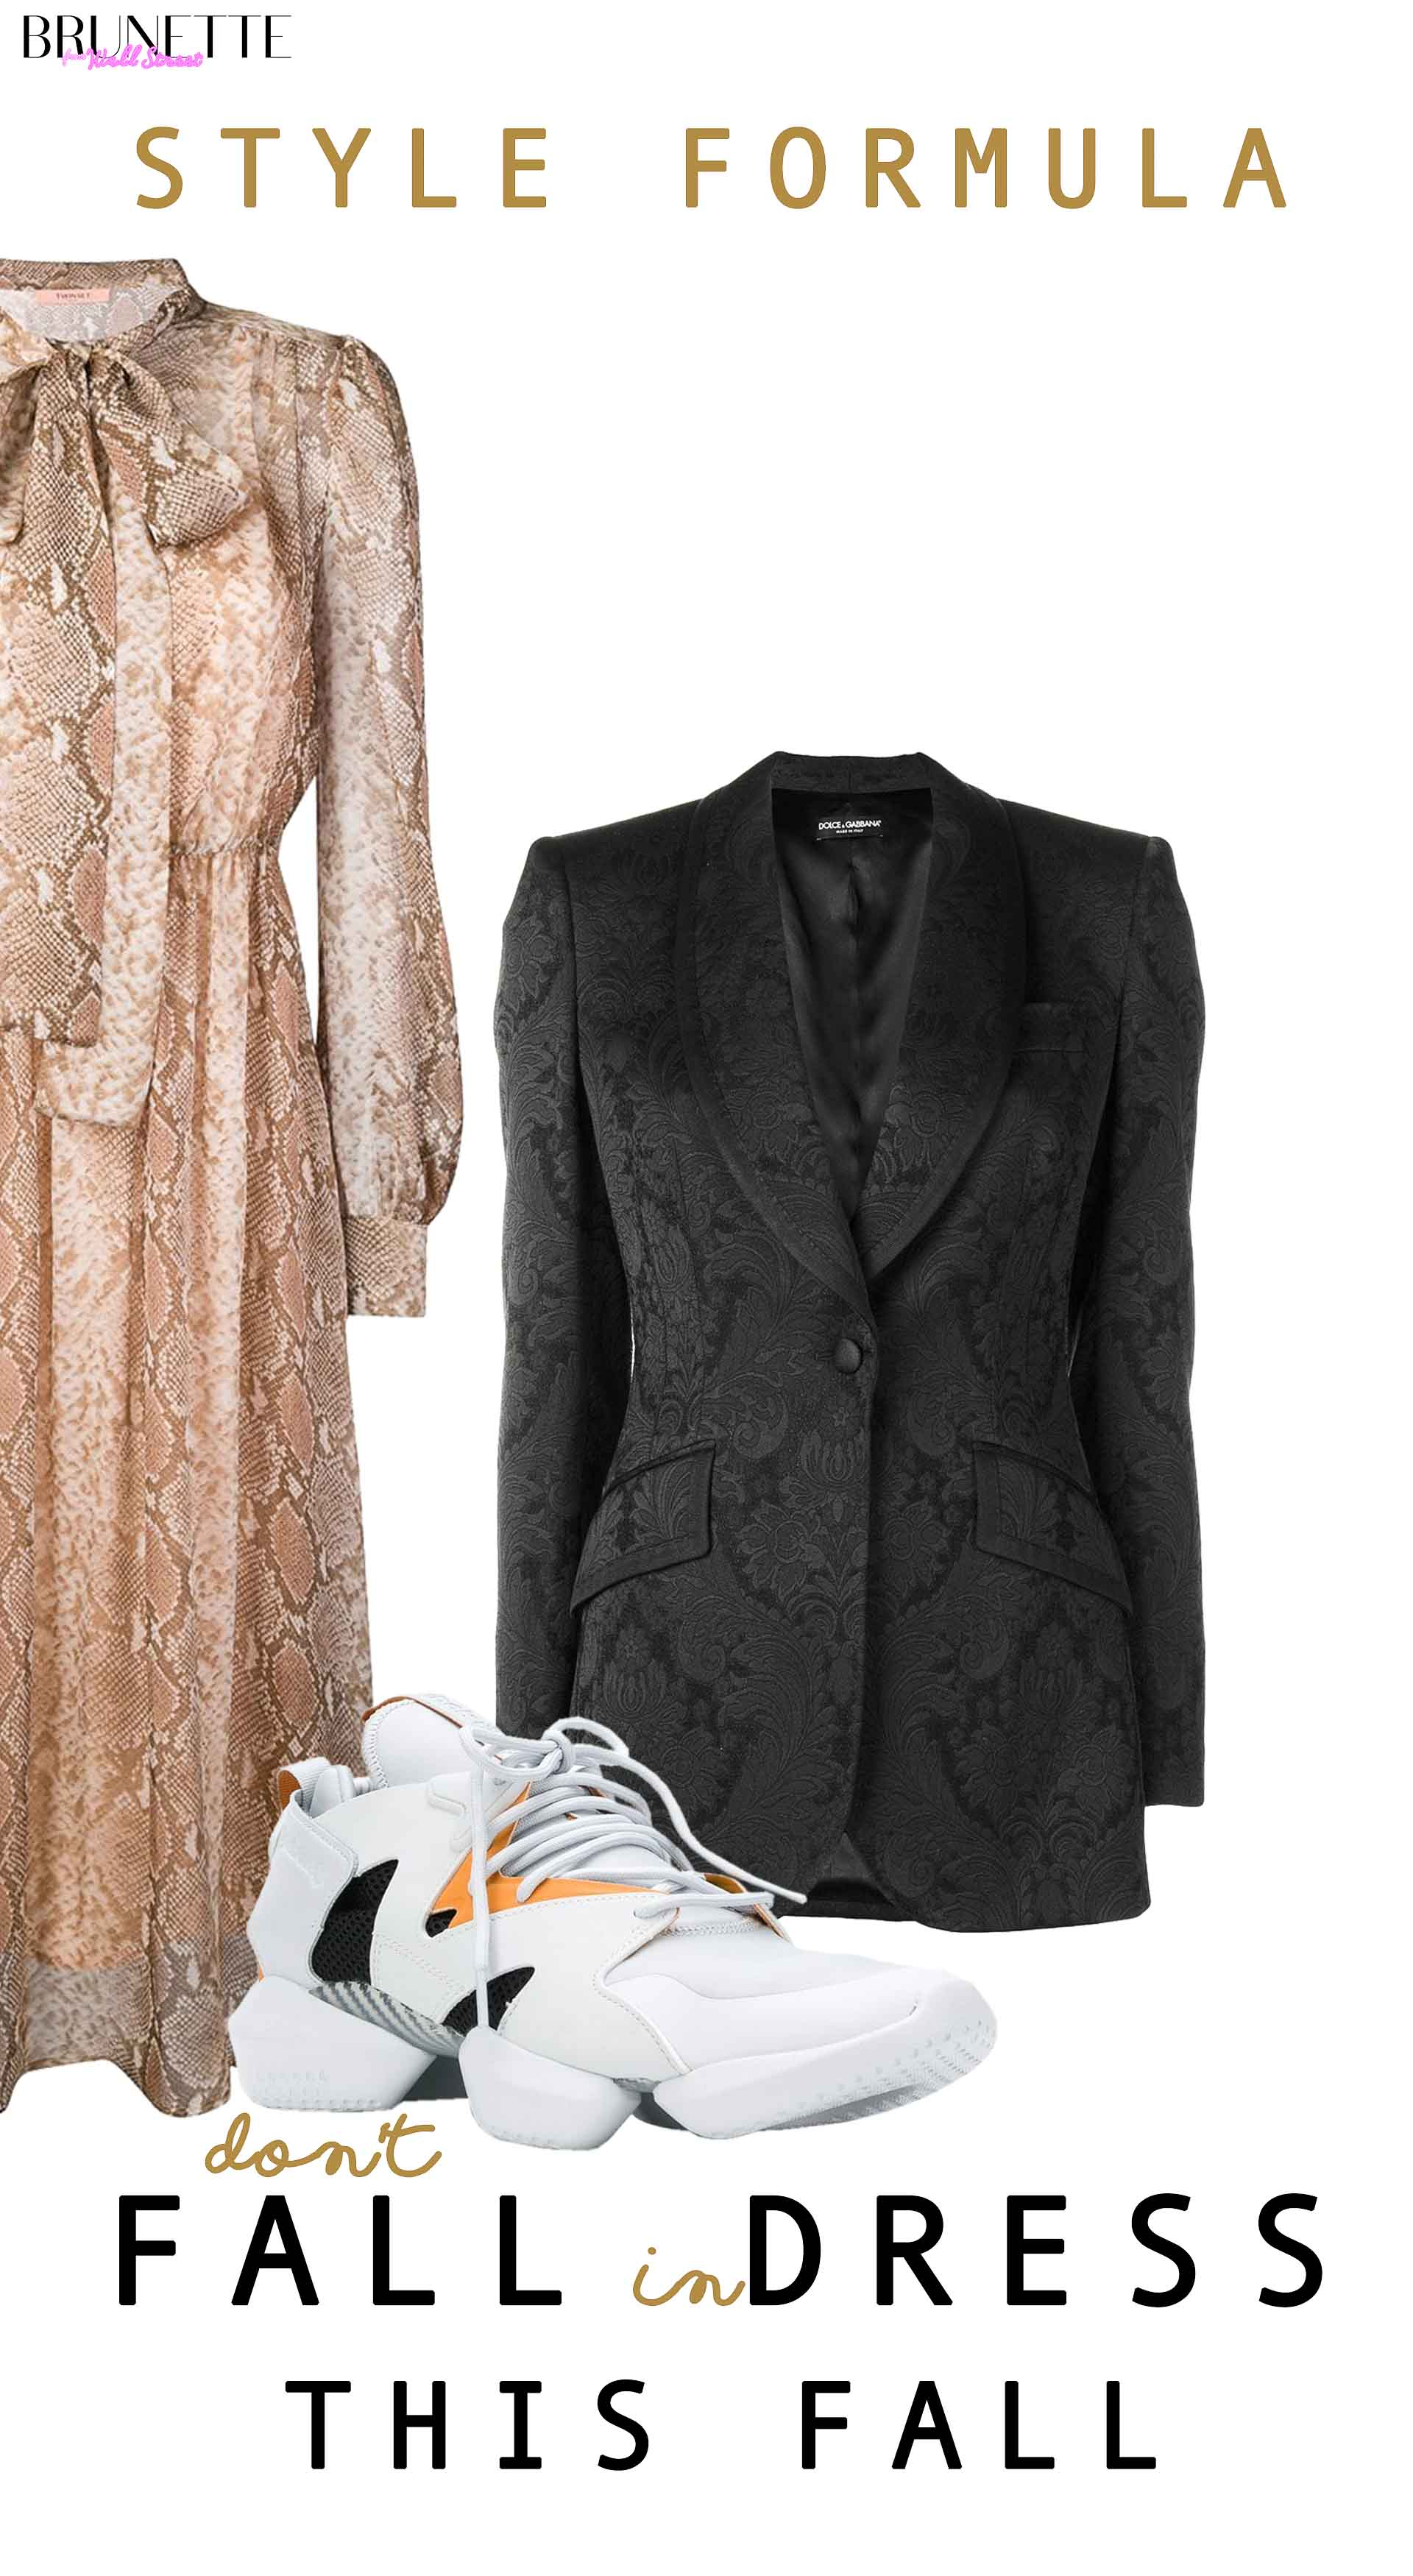 Twin-Set snake printed midi dress, Reebok Instapump sneakers, Dolce & Gabbana brocade blazer with text overlay STYLE FORMULA don't fall in dress this fall